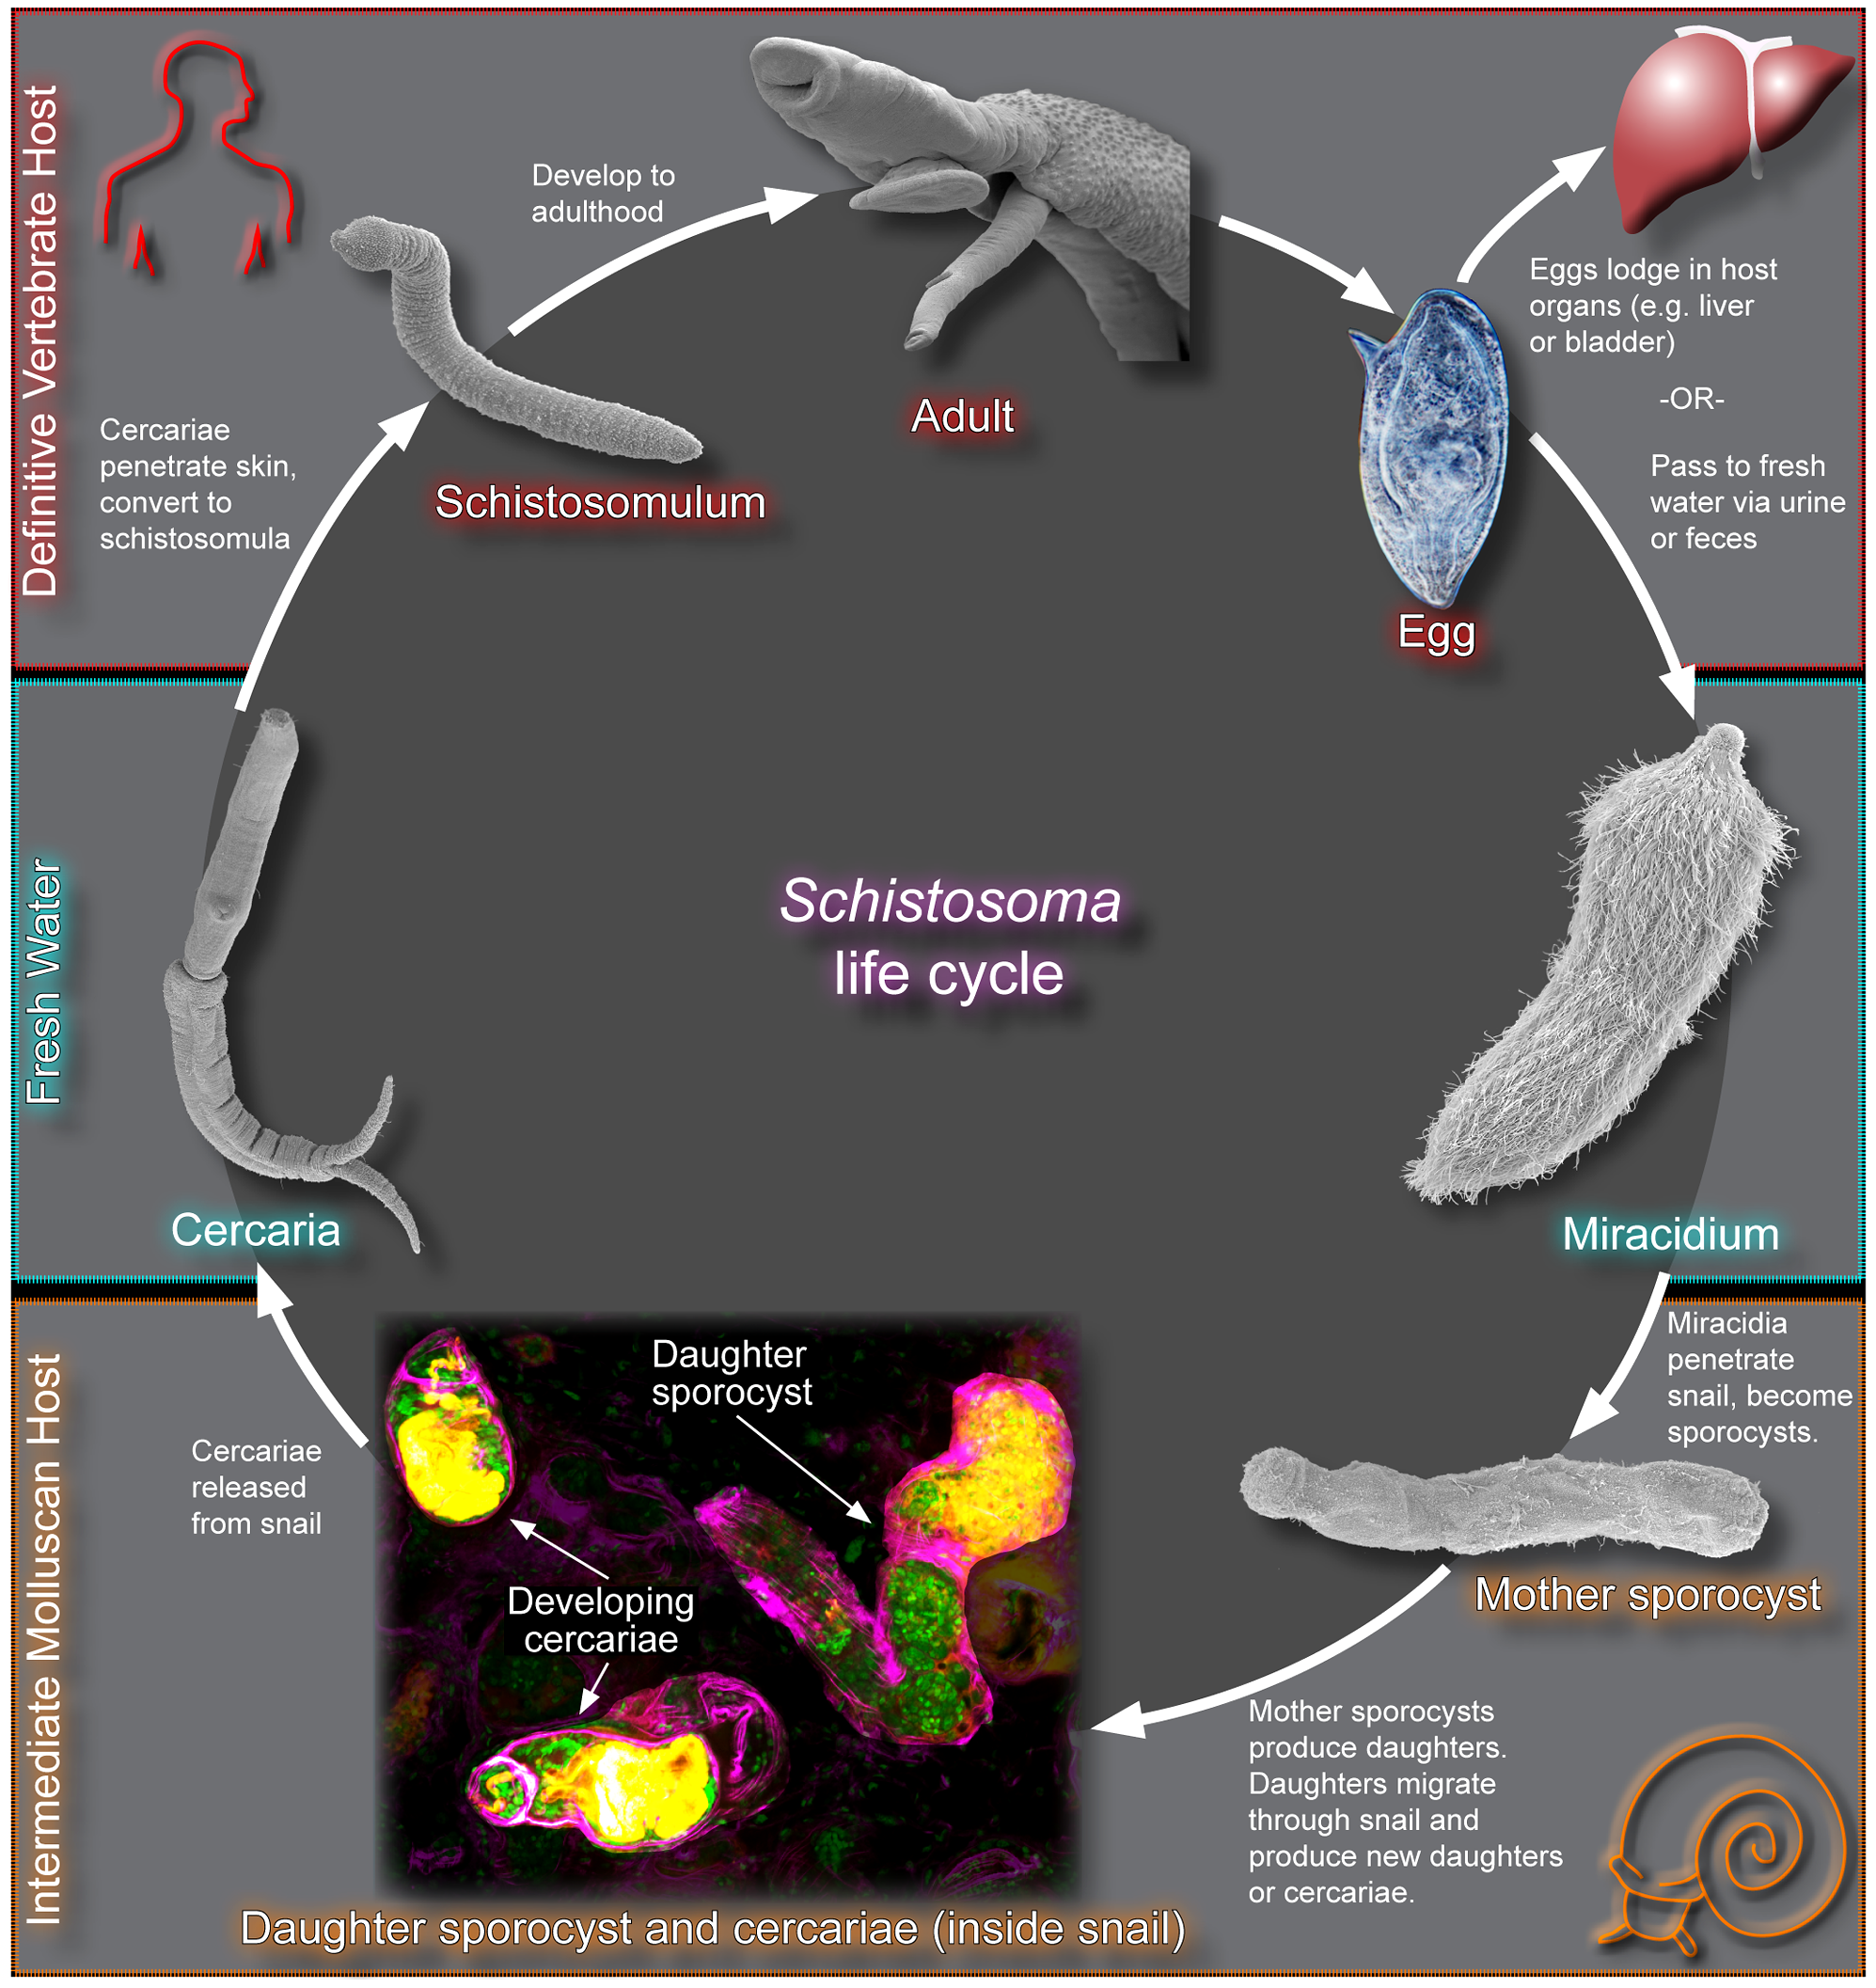 The schistosome life cycle.